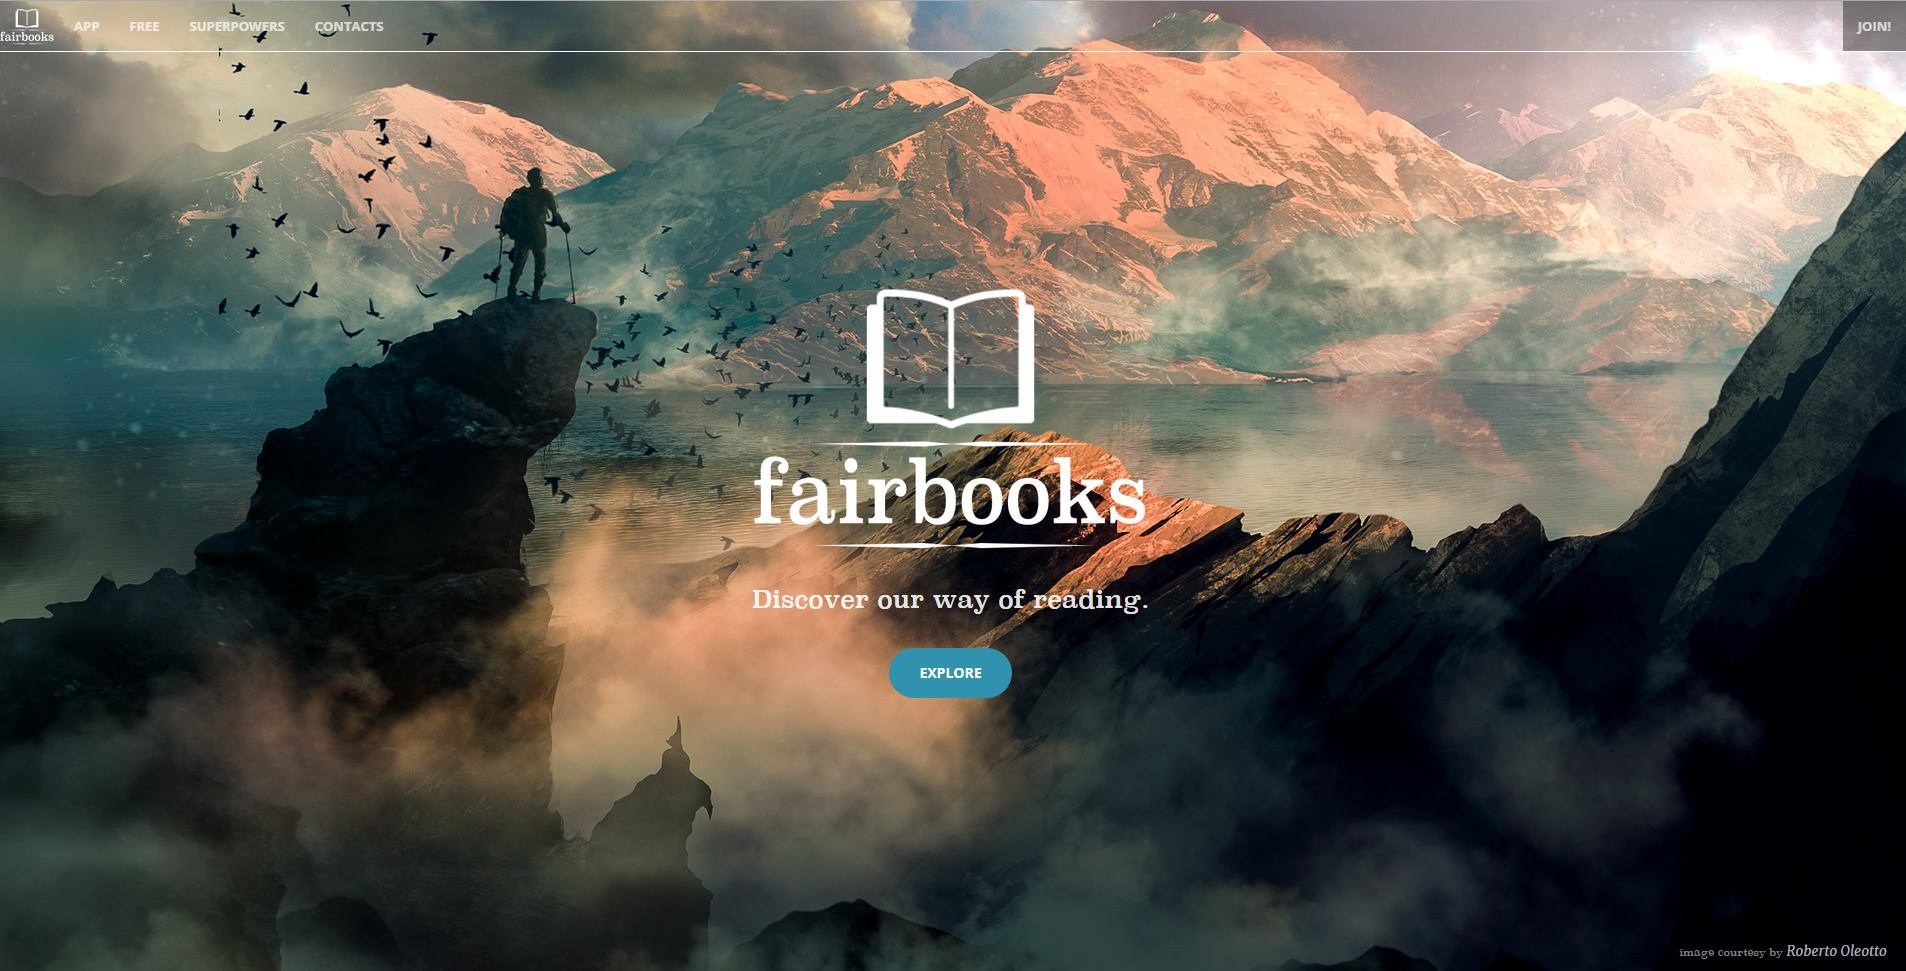 Fairbooks